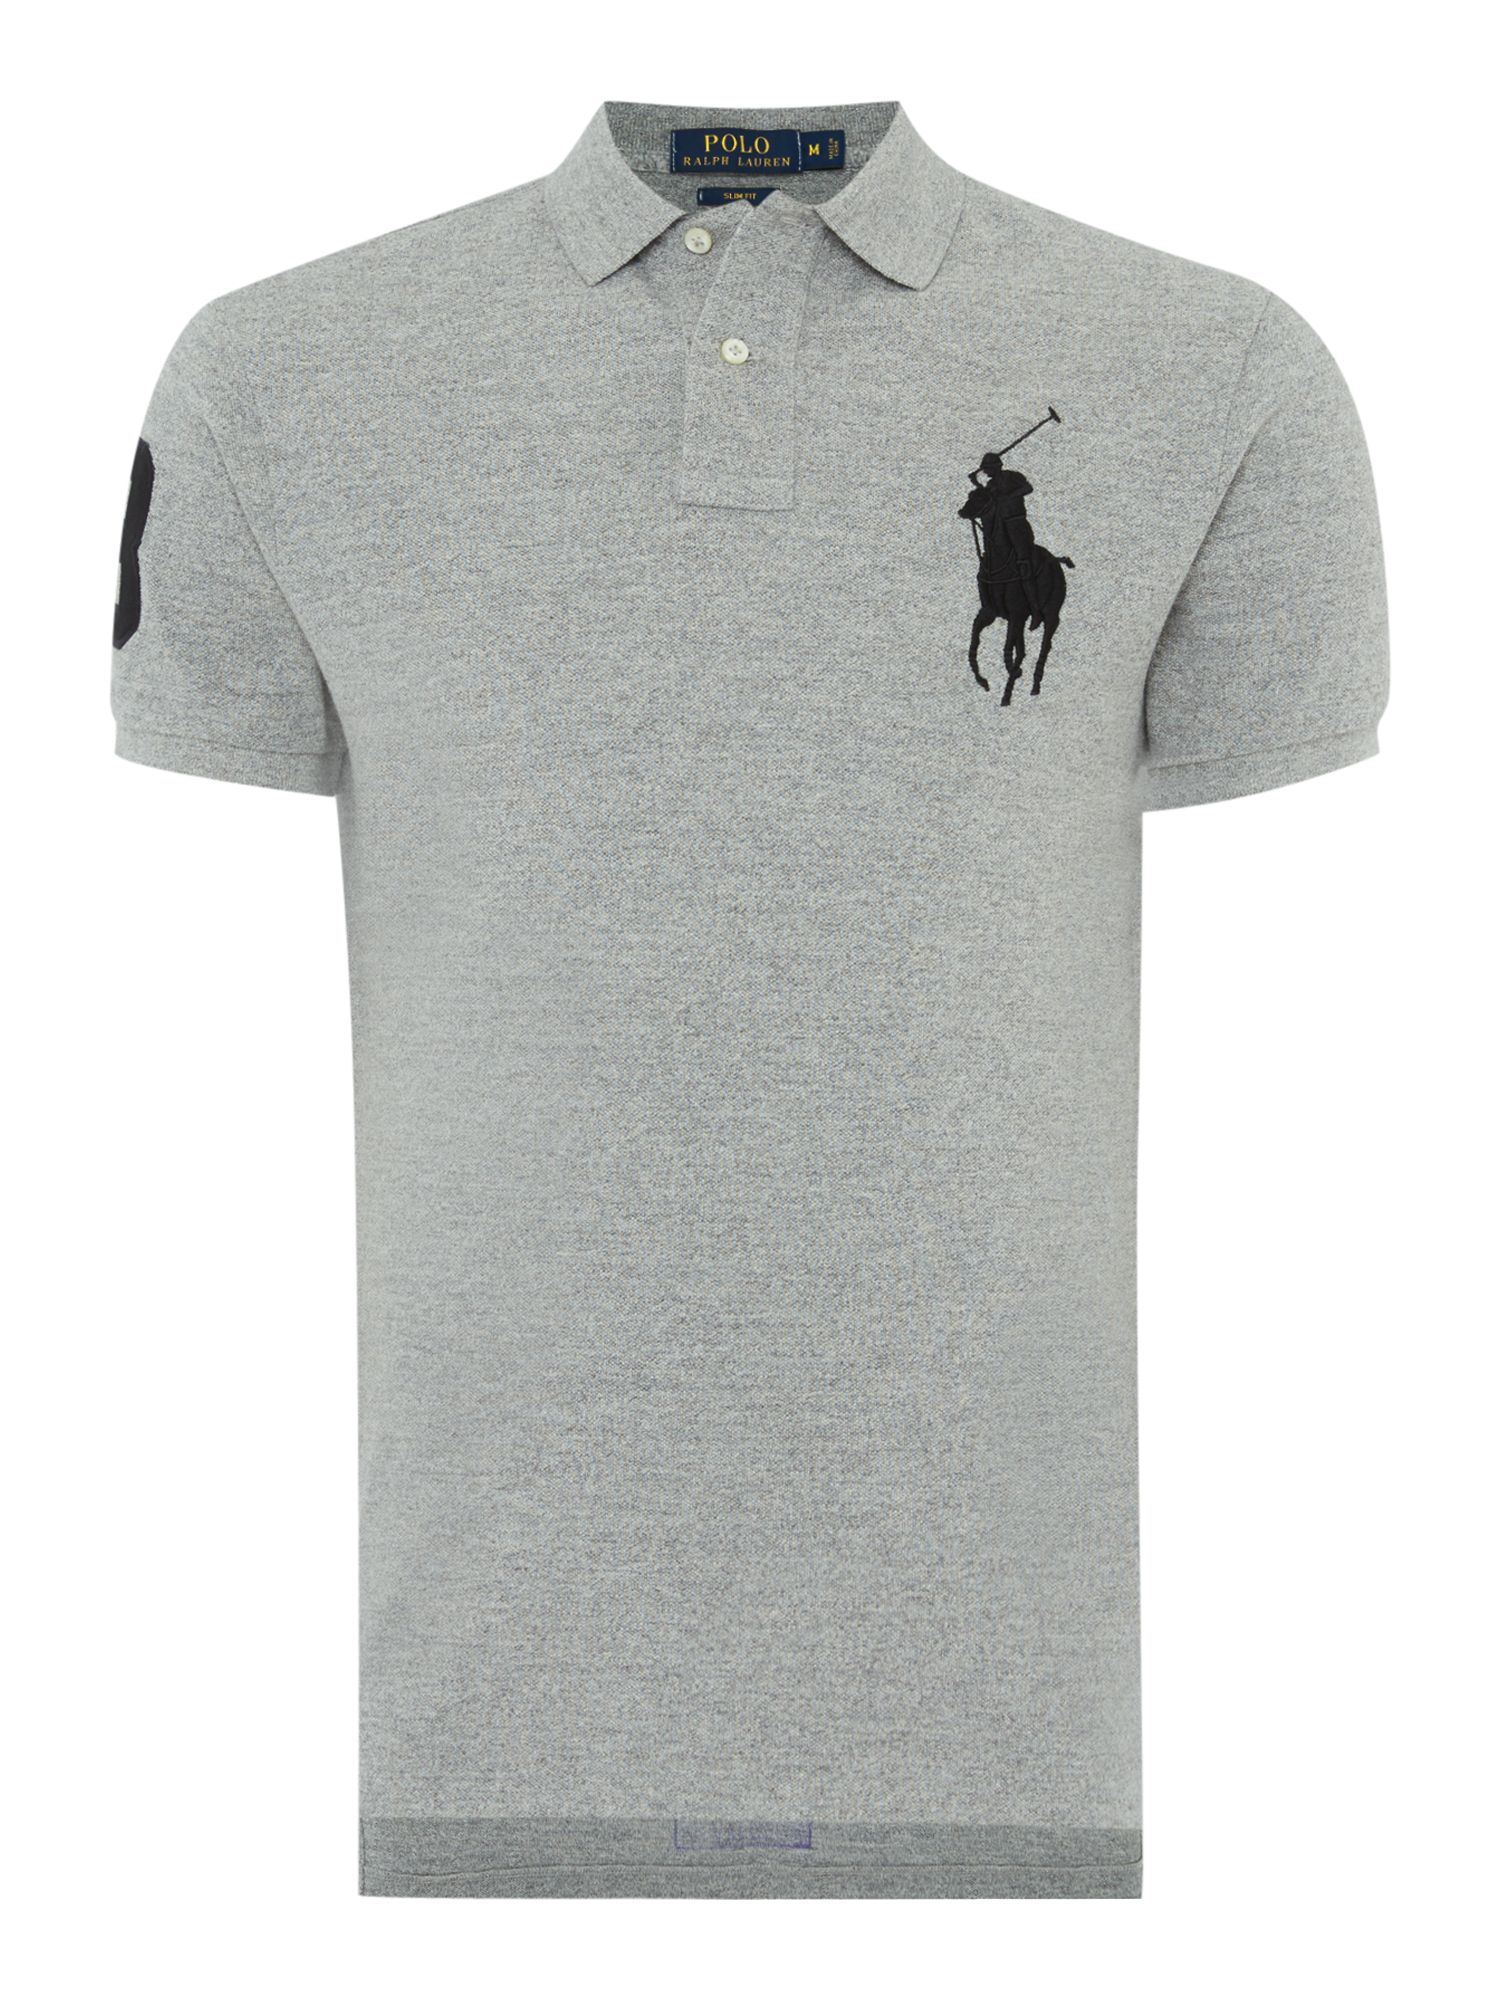 ... Polo Ralph Lauren Custom Fit Big Pony Polo Shirt ...